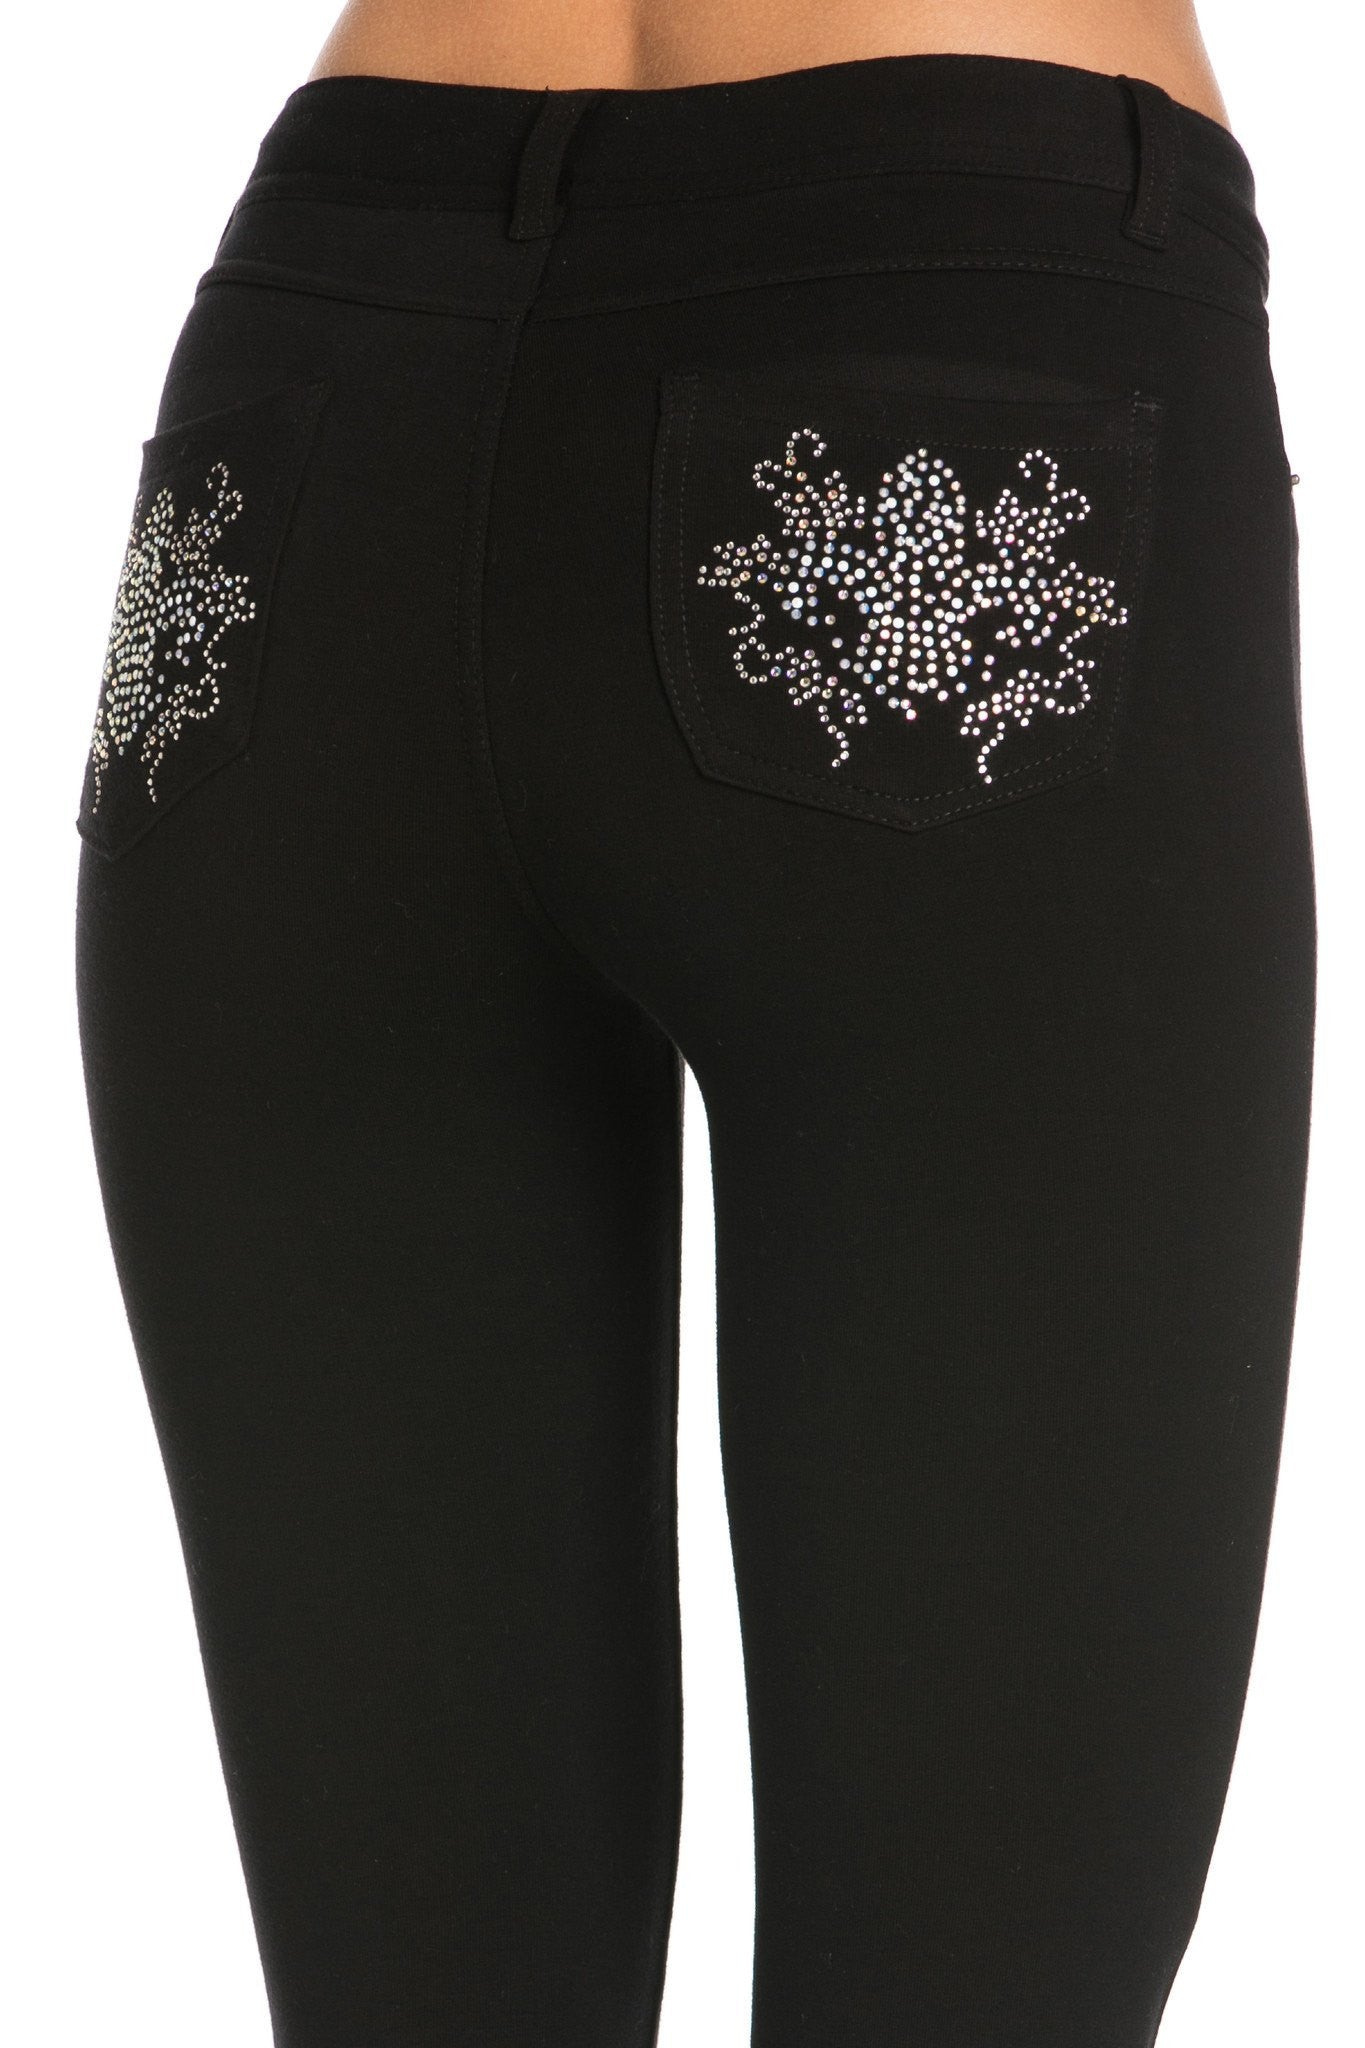 Embellished Stretch Skinny Knit Jegging Pants (Flower) - Poplooks